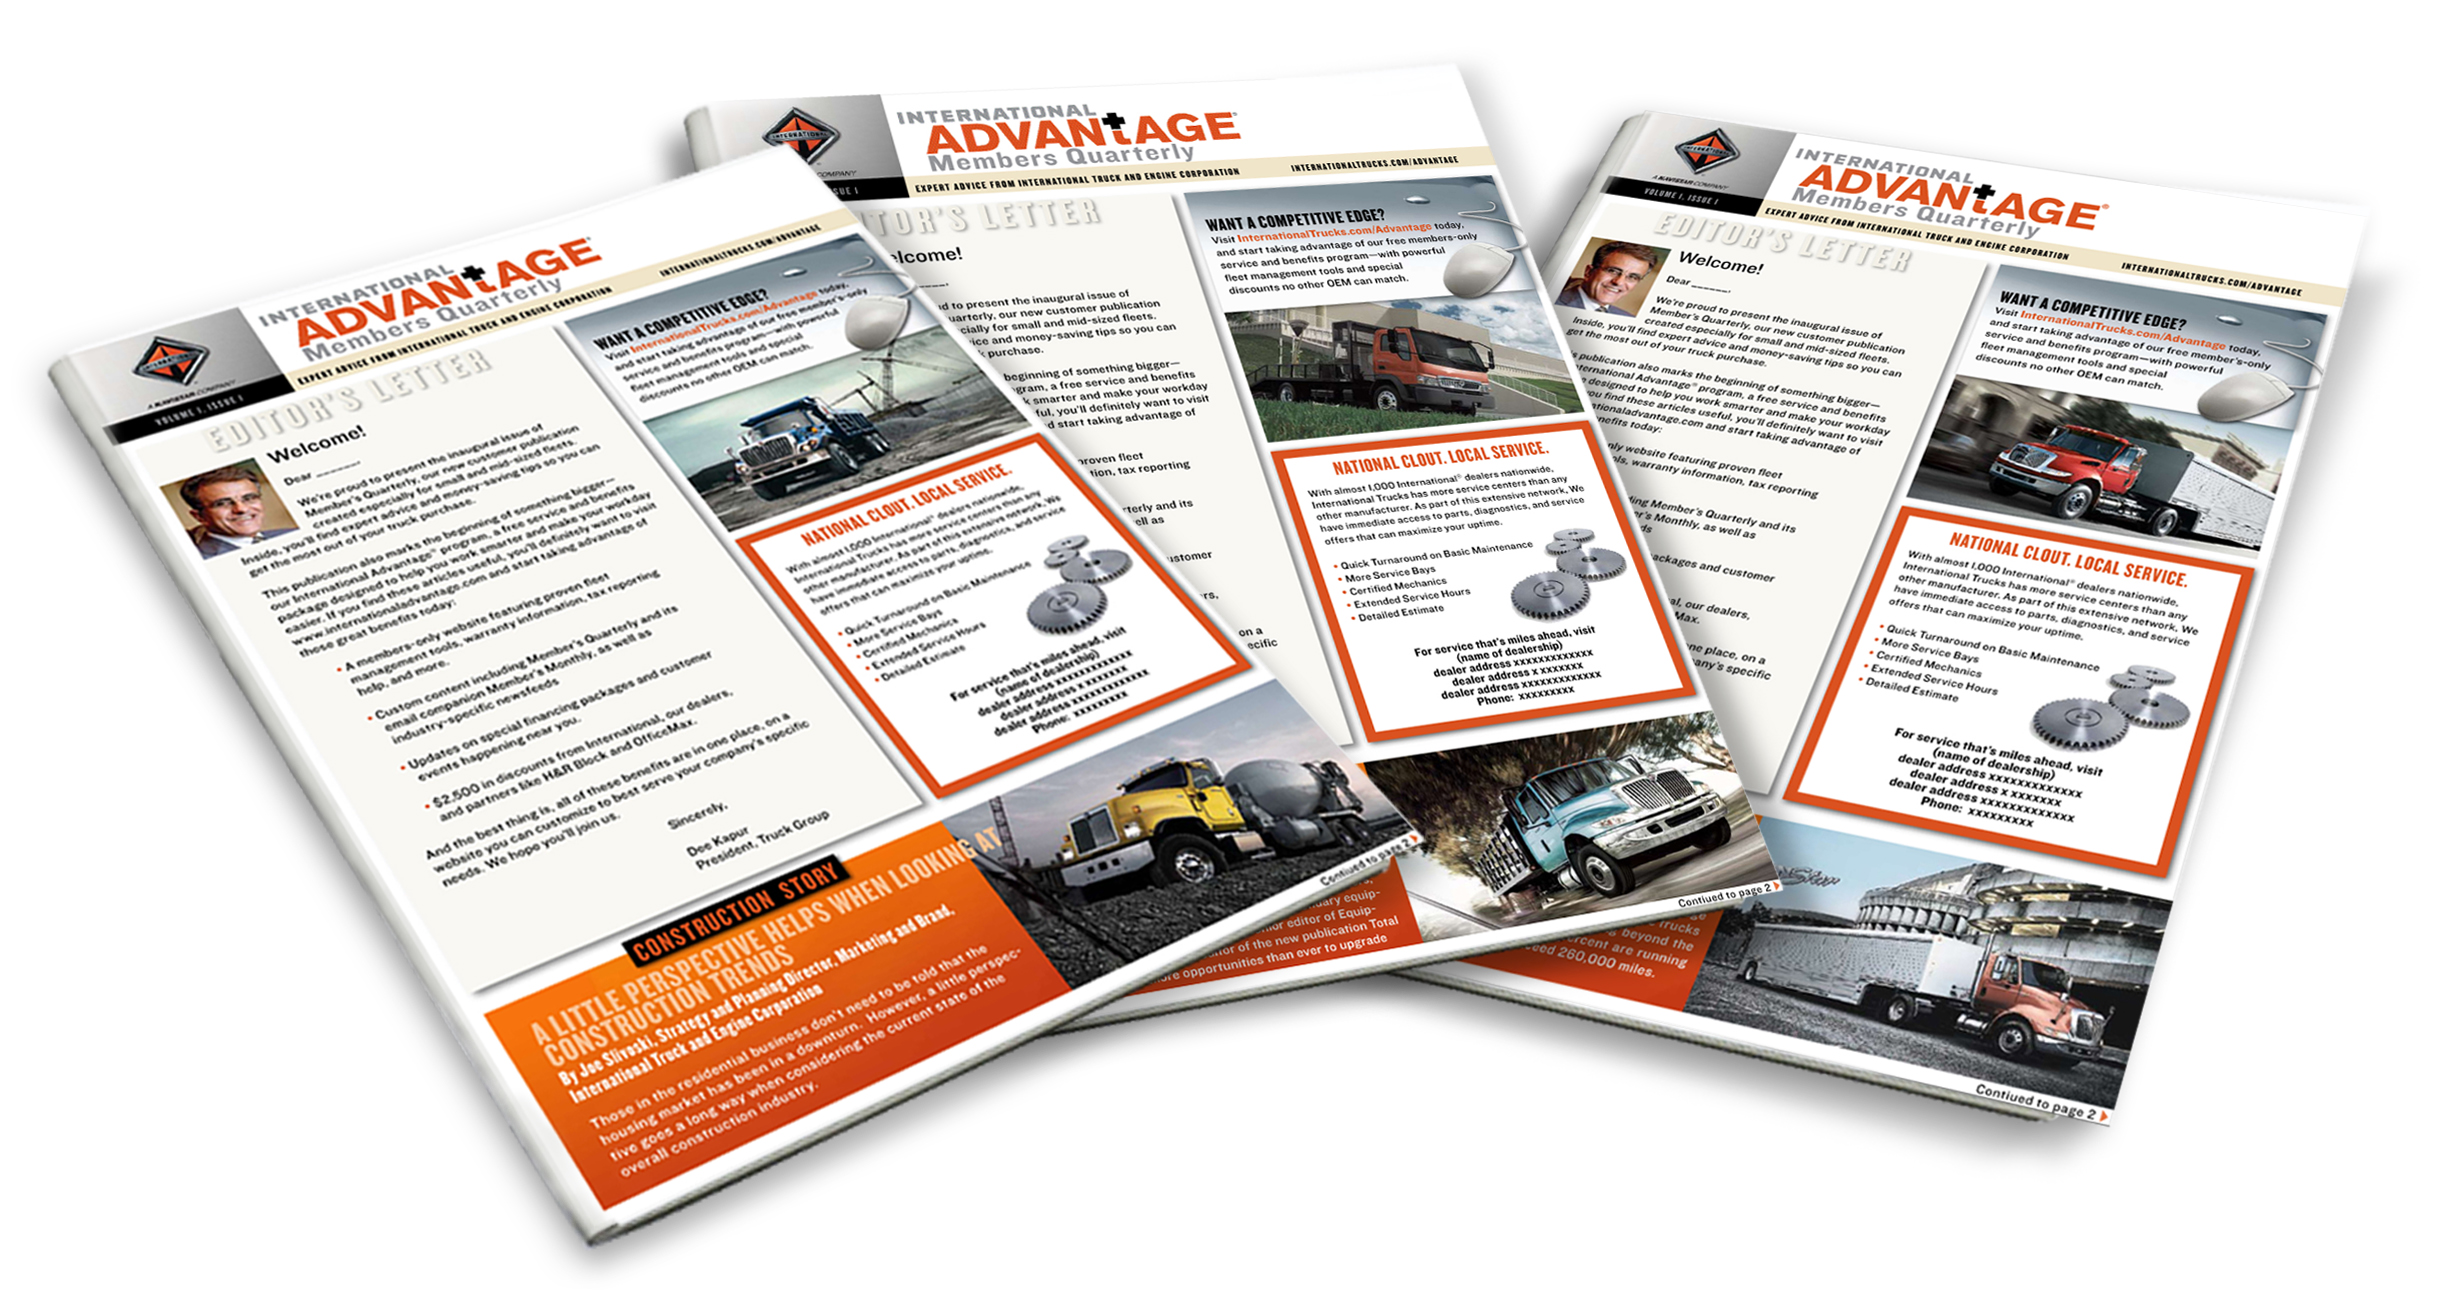 International Advantage Members Quarterly news magazine containing news, information, stories related to the industry and special promotional offers. 3 versions of the magazine were created focused on different trucking areas/customer bases.